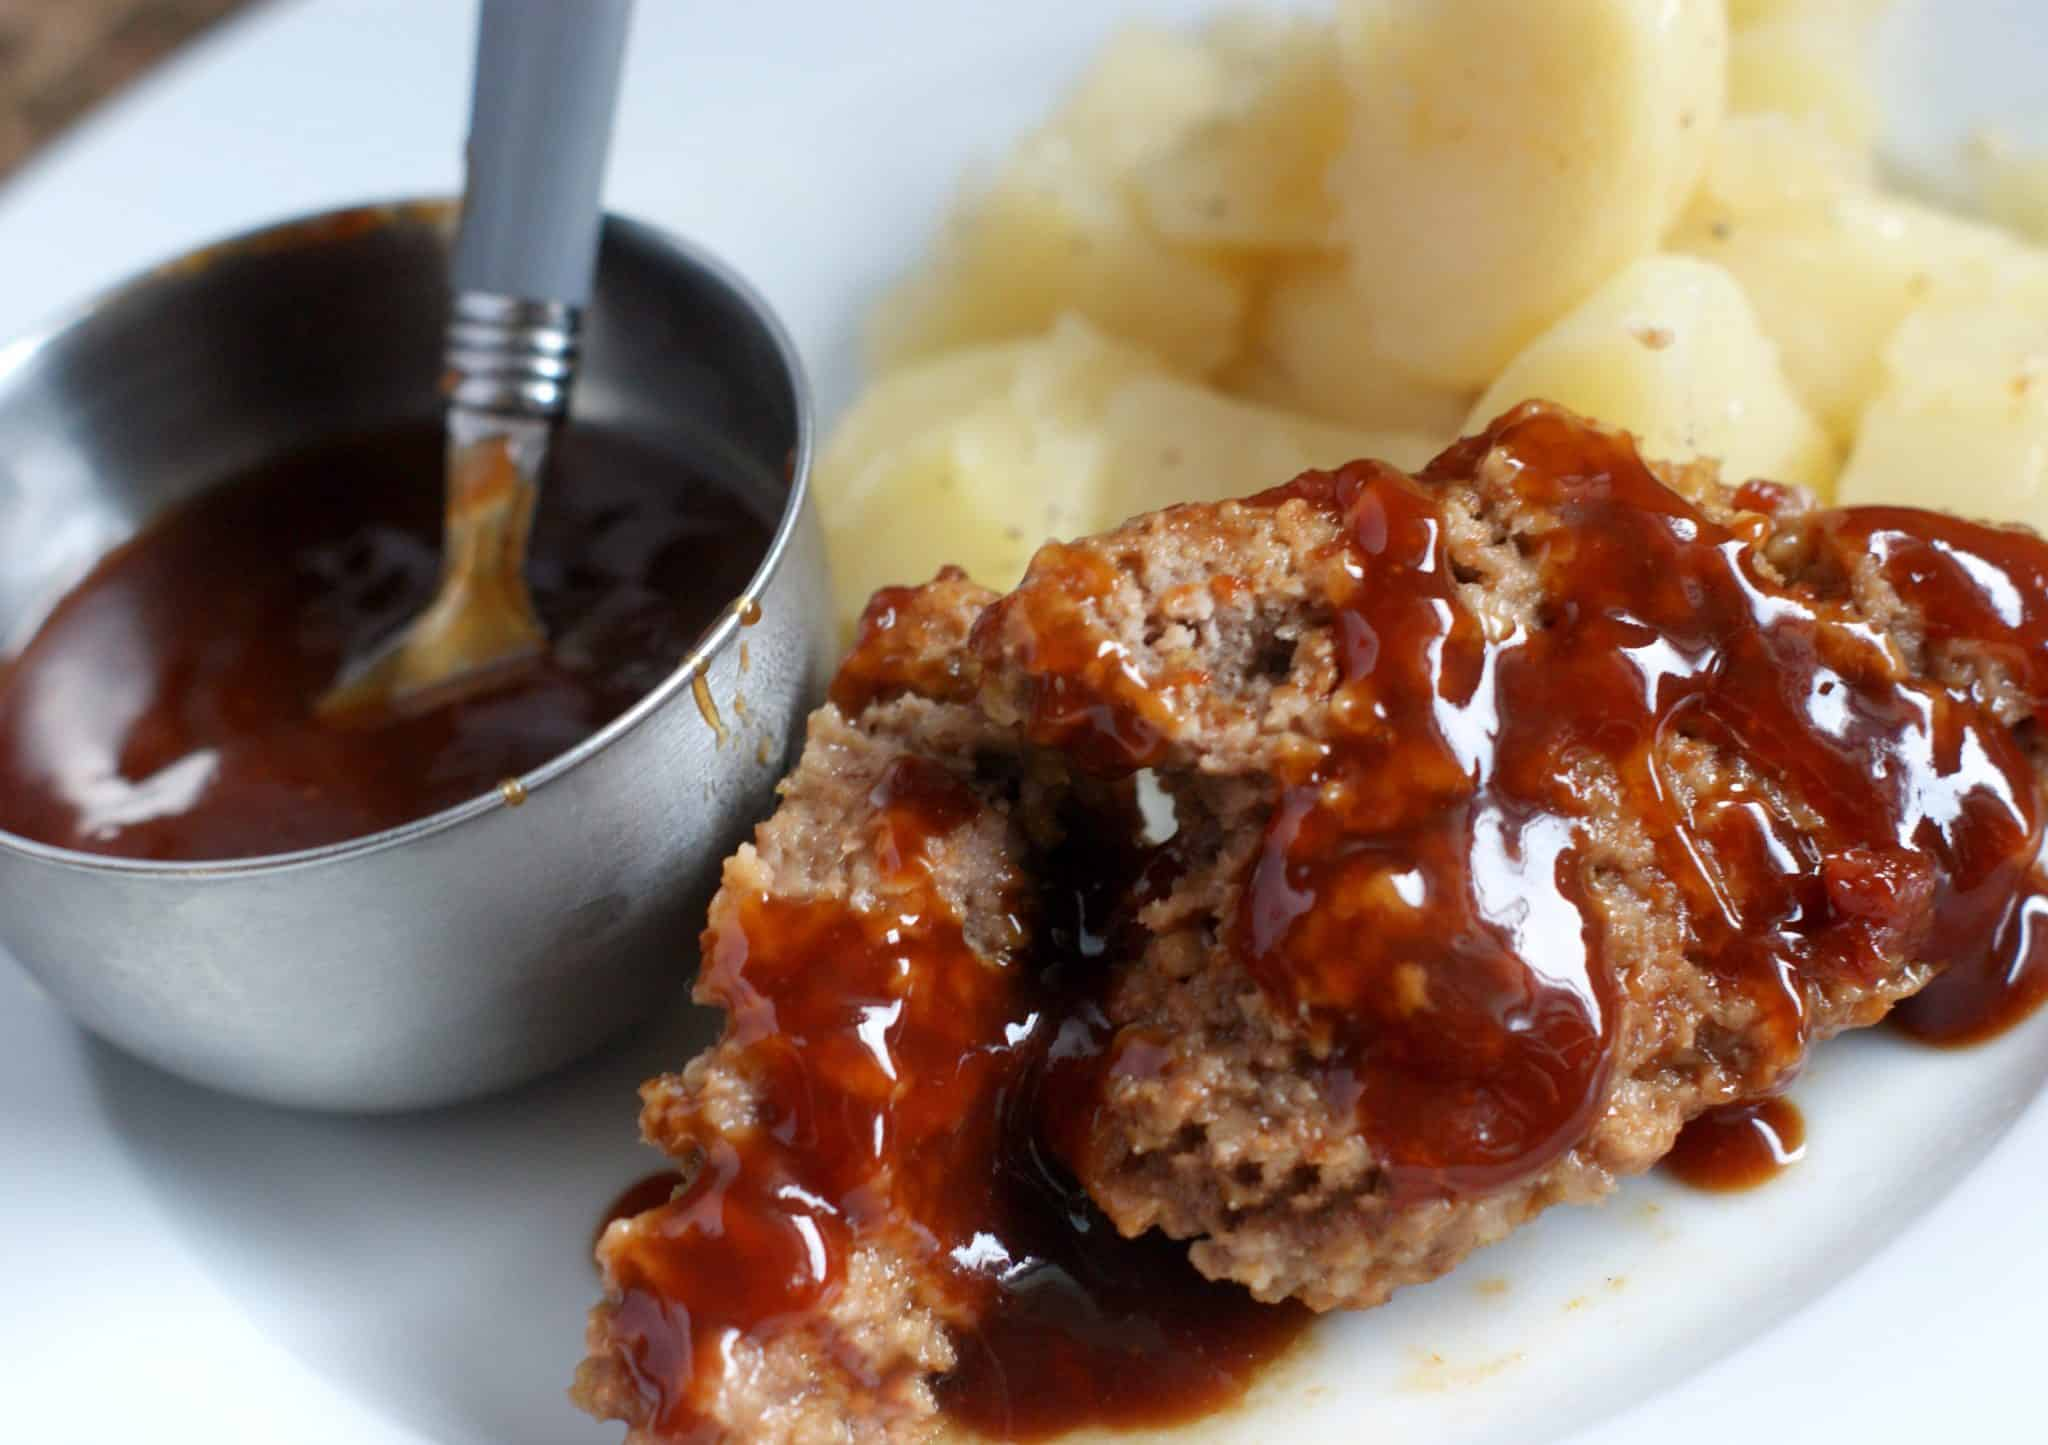 Meatloaf potatoes and sauce